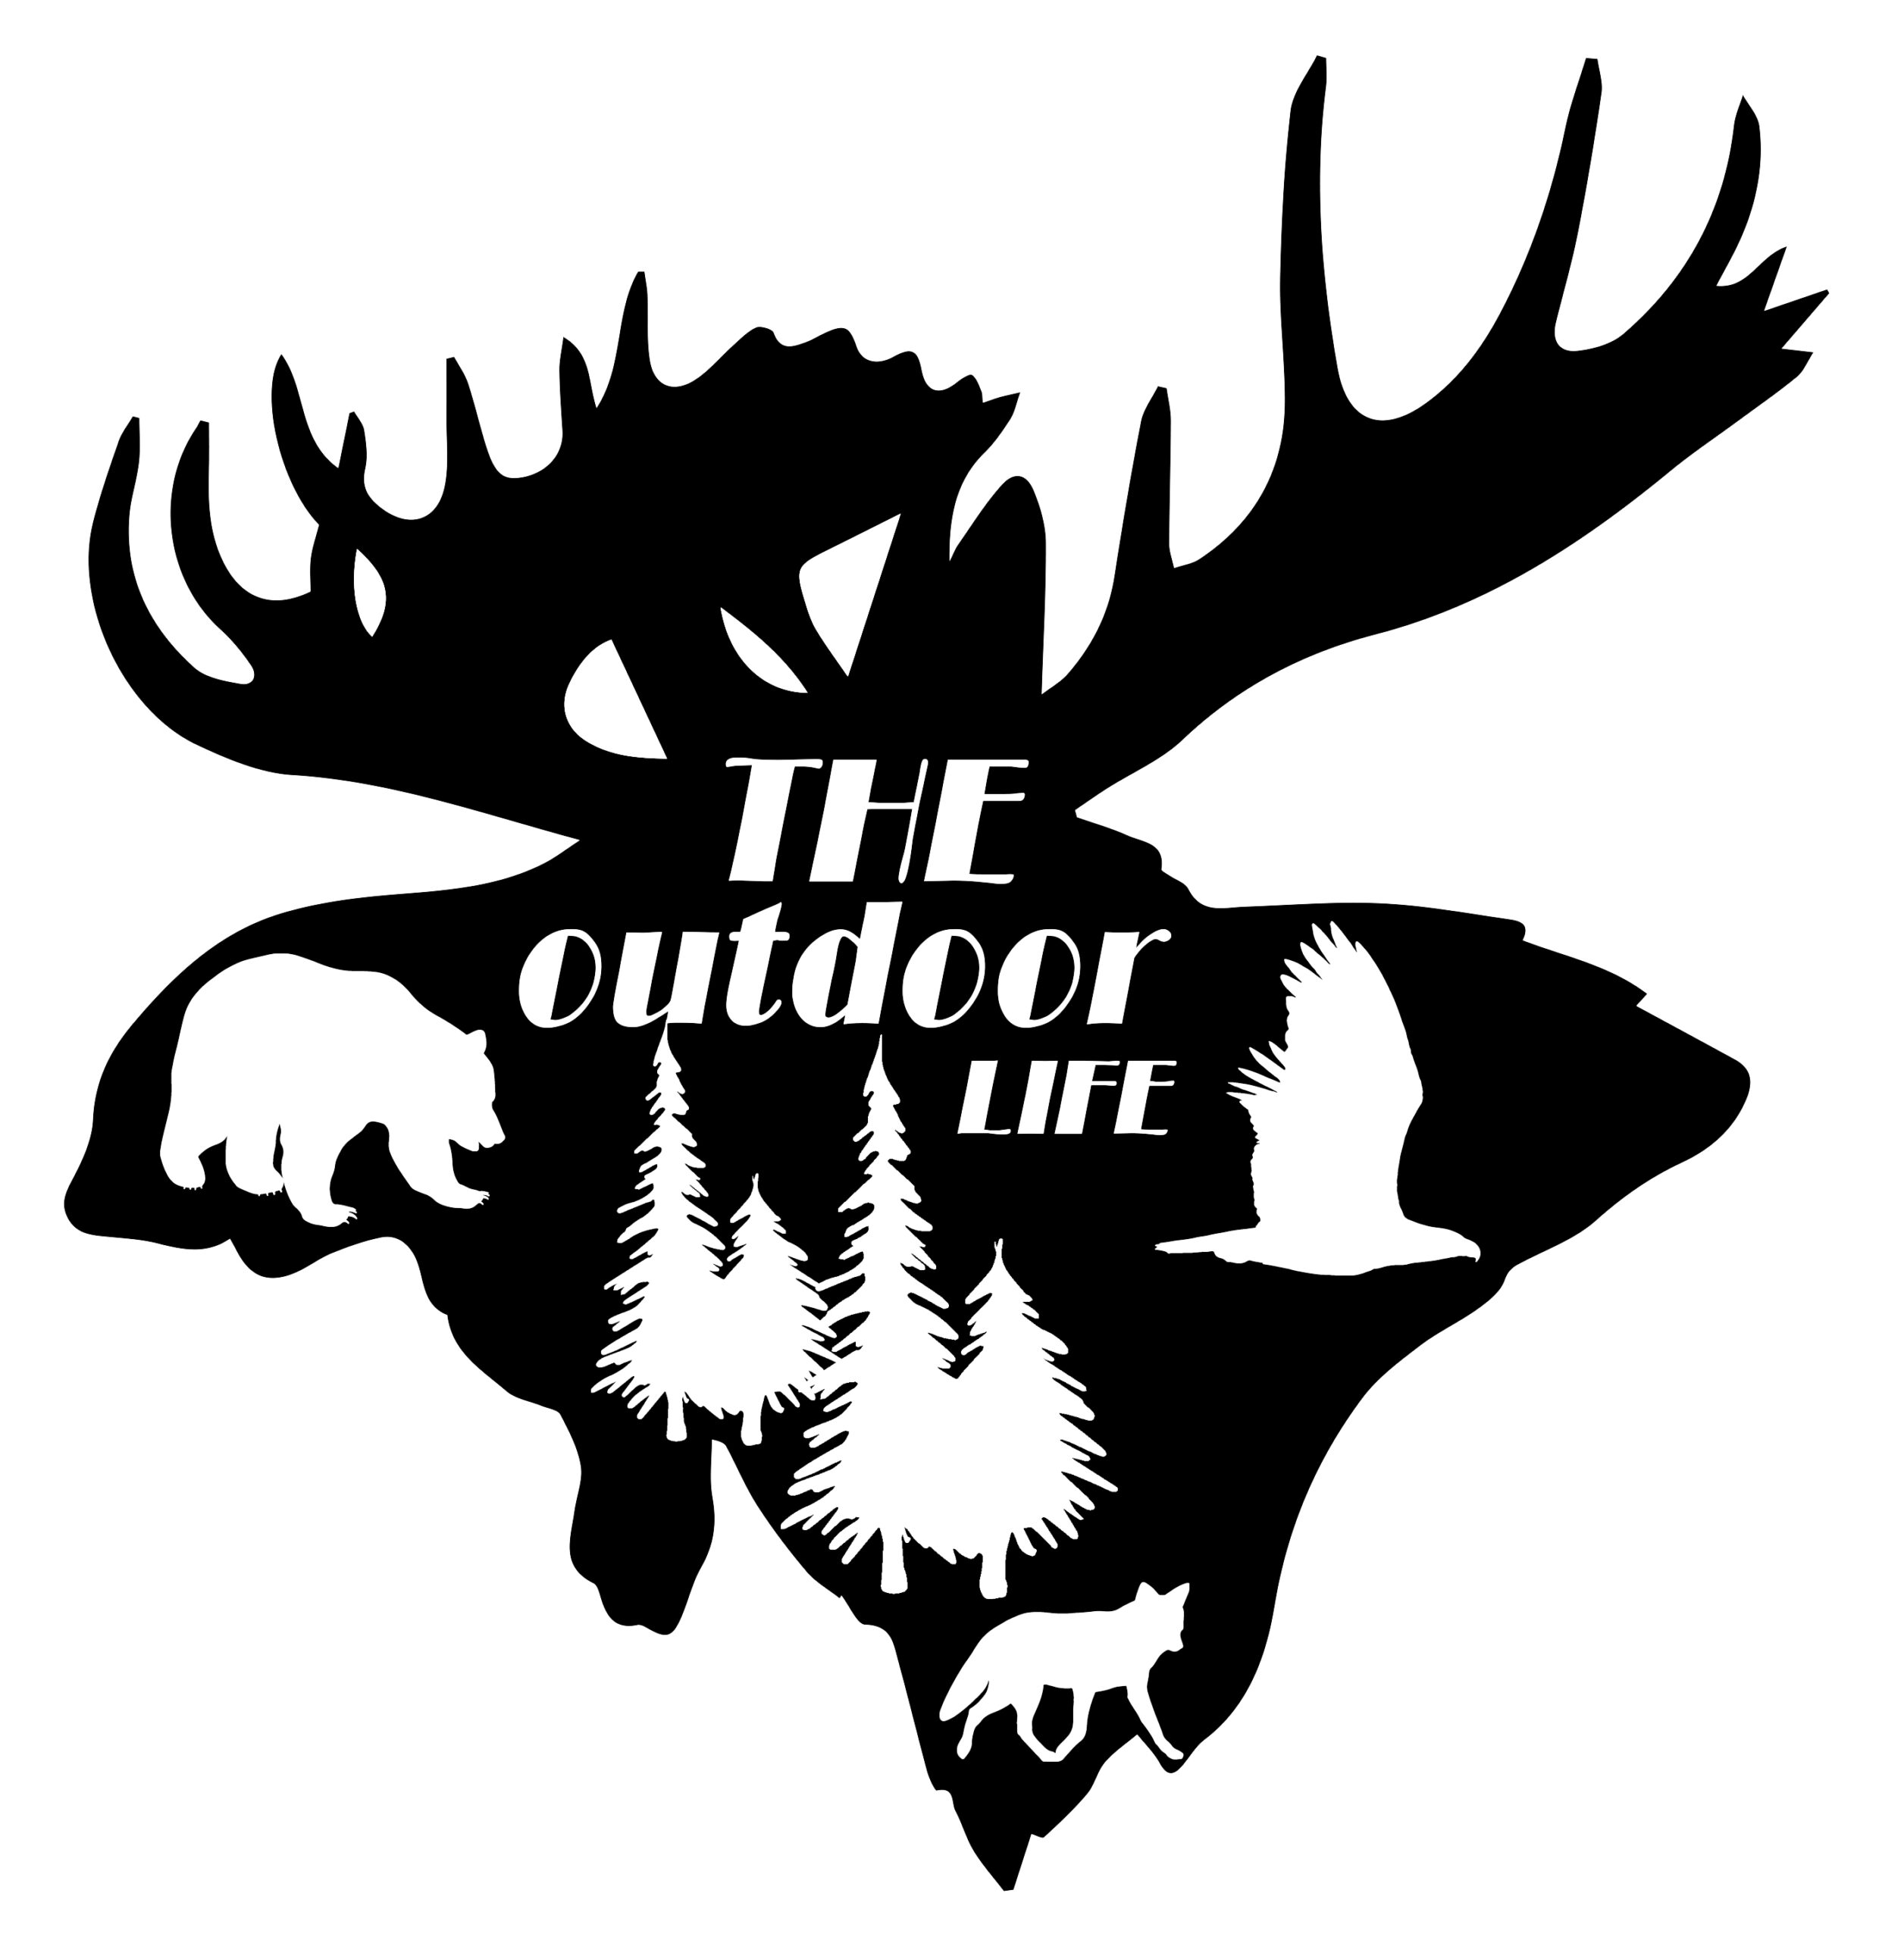 Free The Outdoor Life SVG File